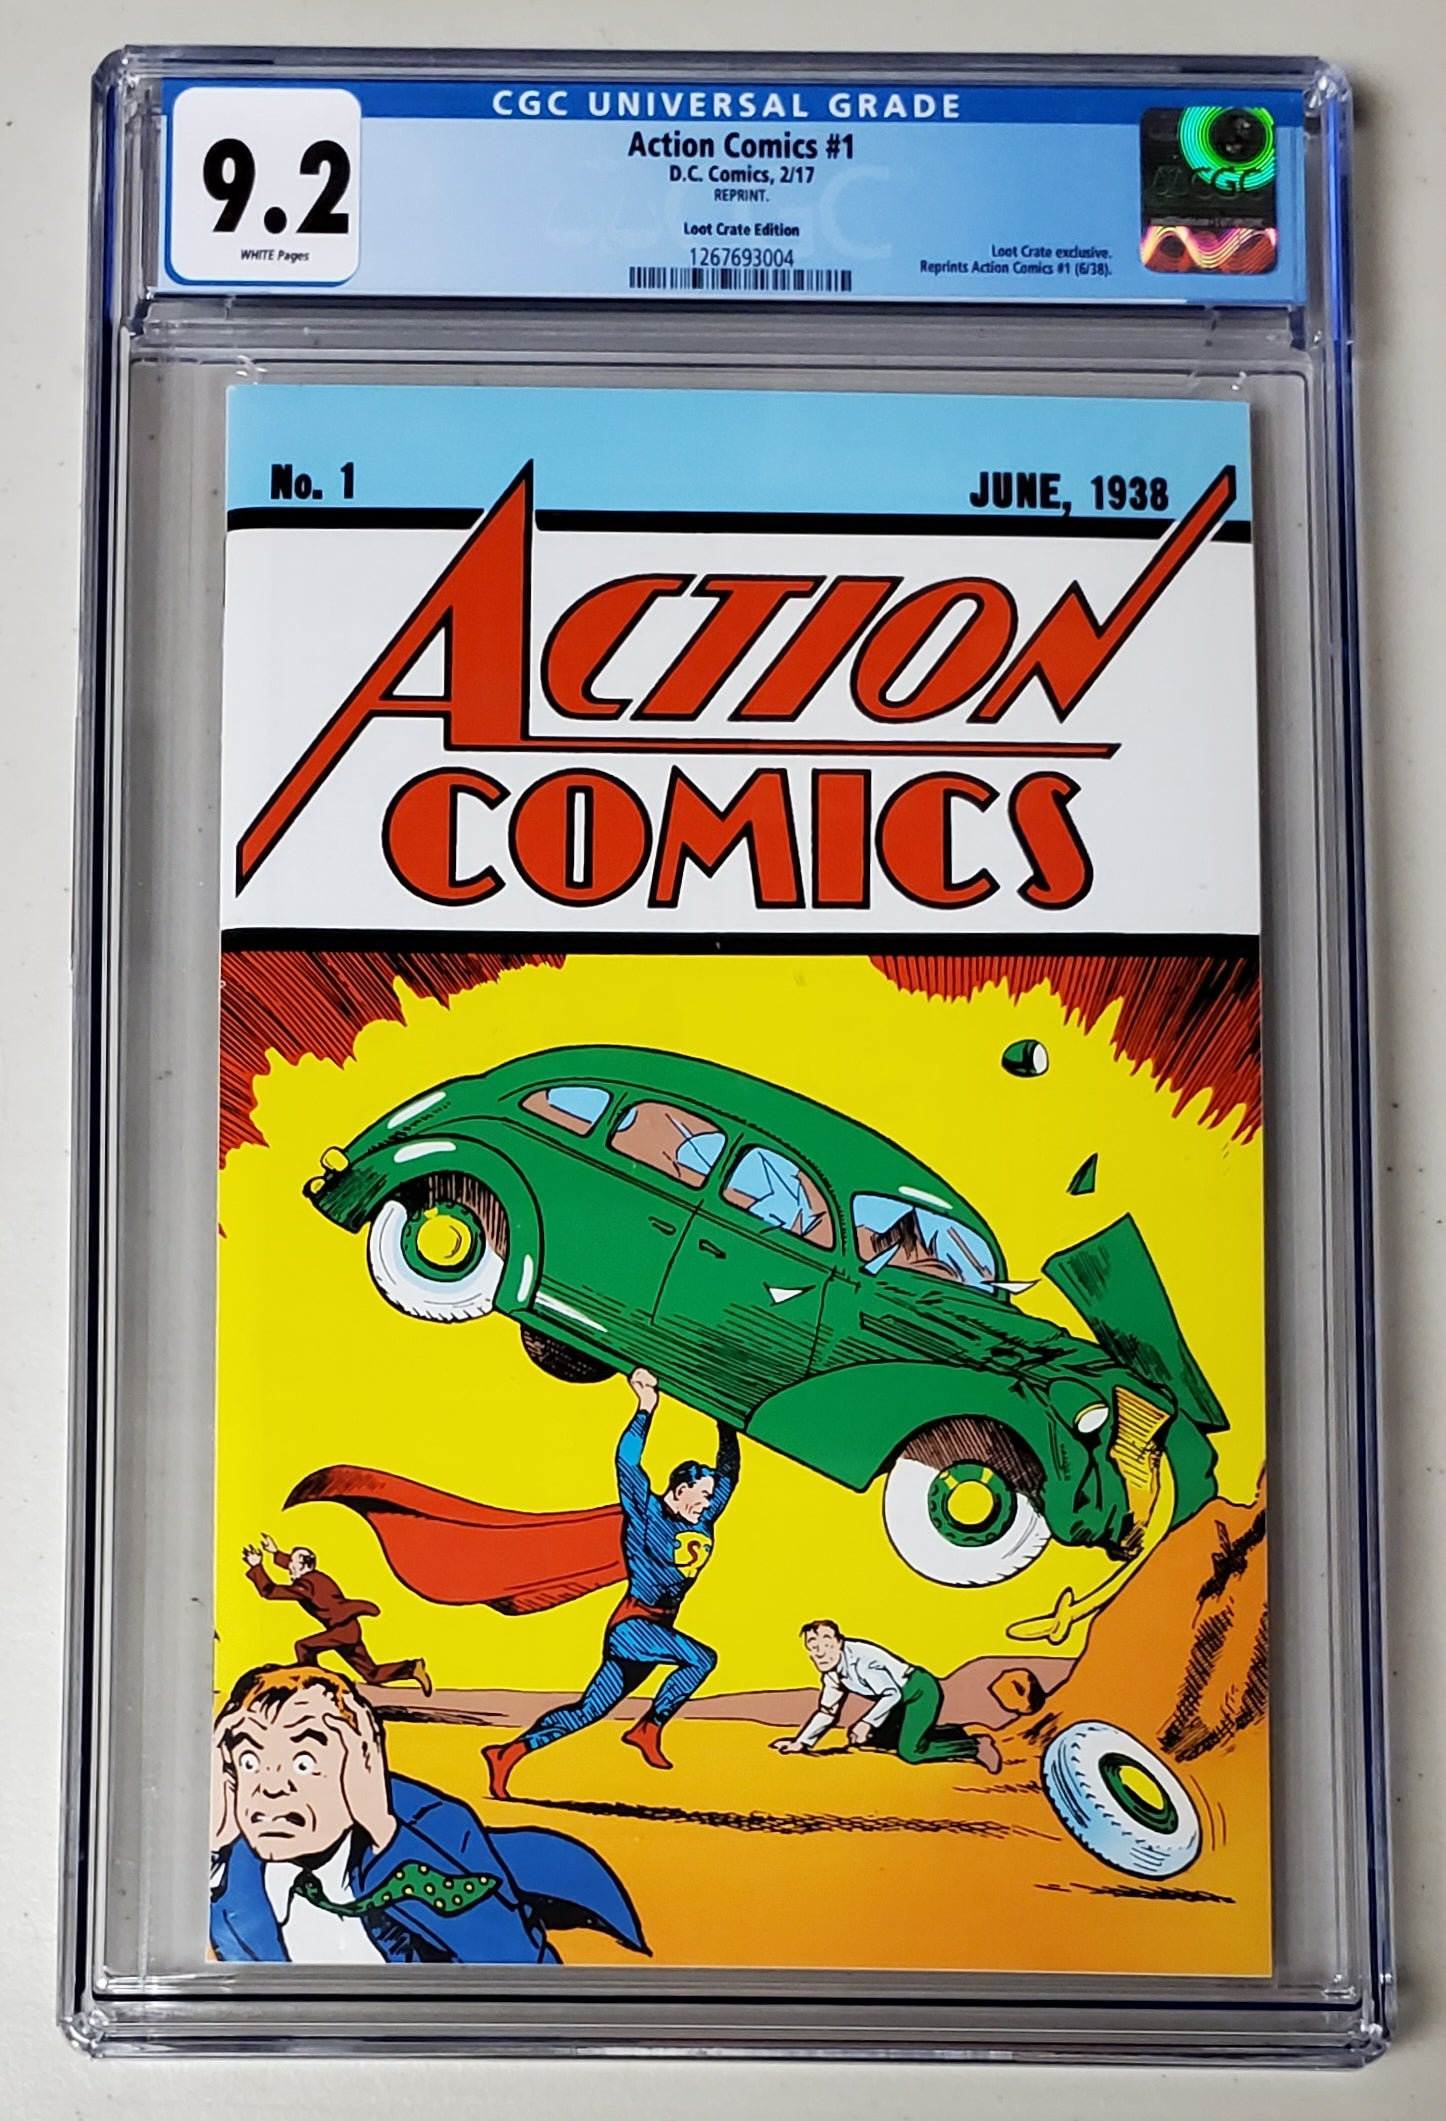 9.2 CGC Action Comics #1 Loot Crate Variant Reprint DC 2017